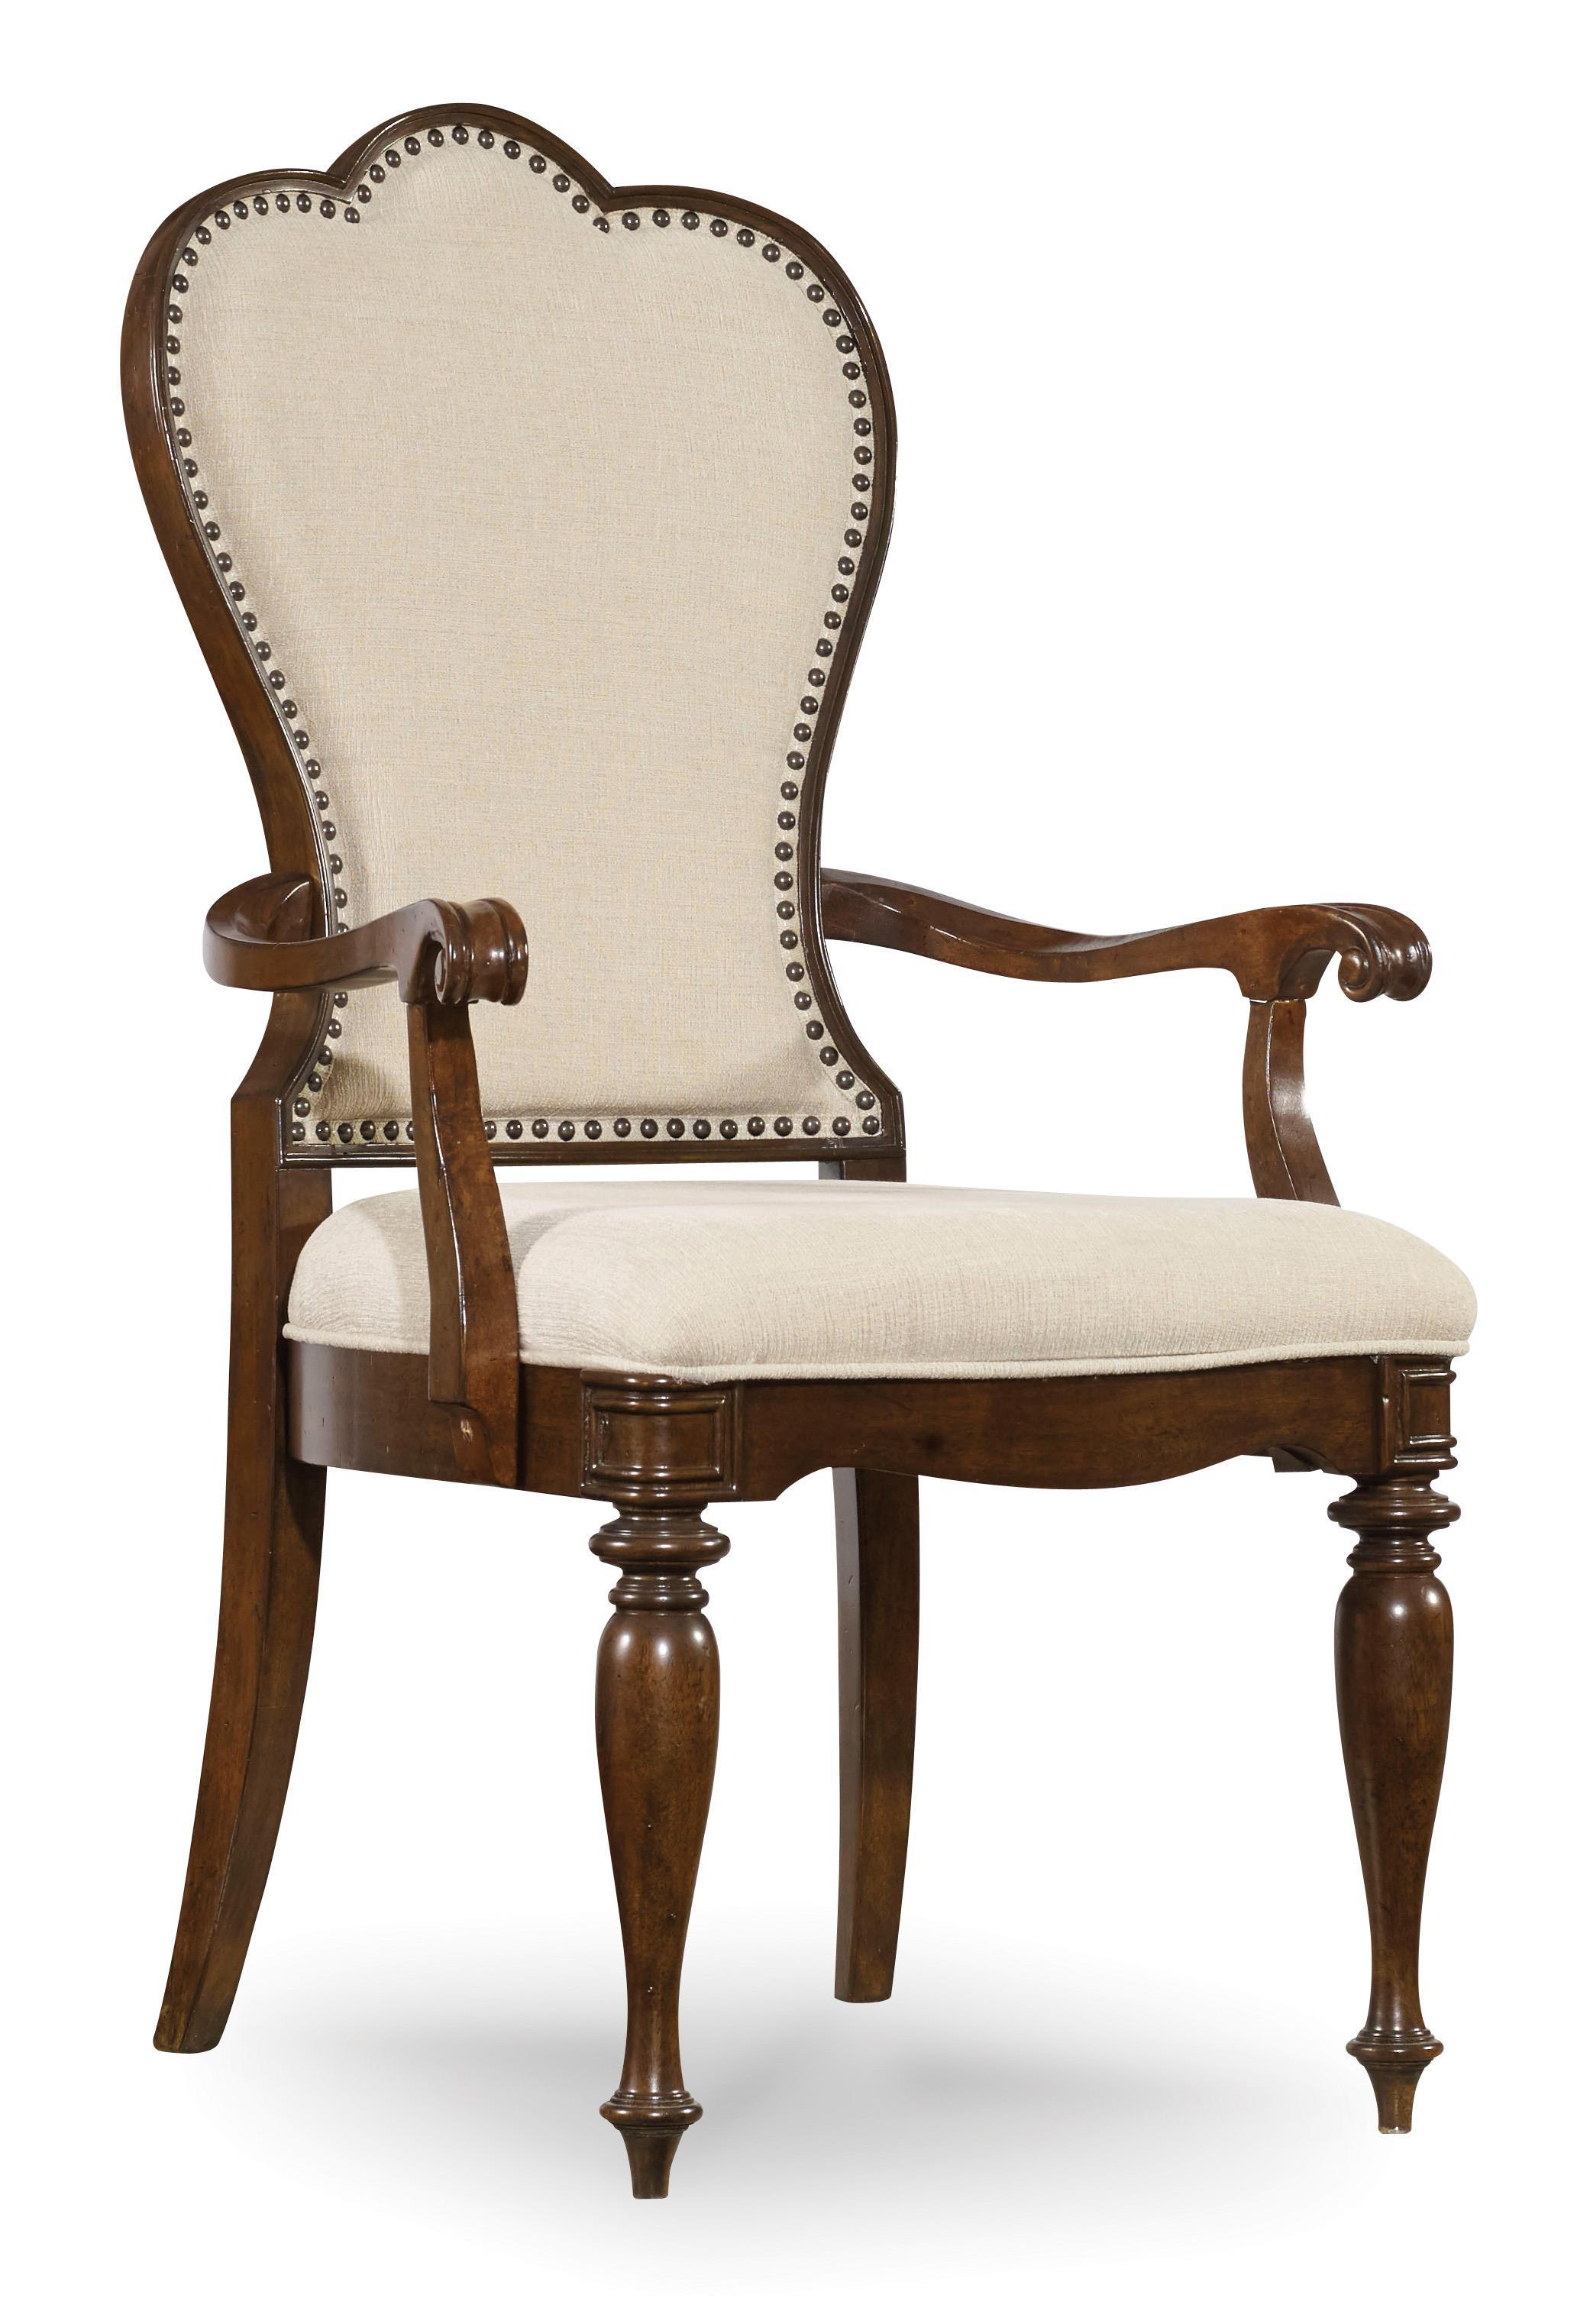 Hooker Furniture Leesburg Upholstered Arm Chair - Item Number: 5381-75400